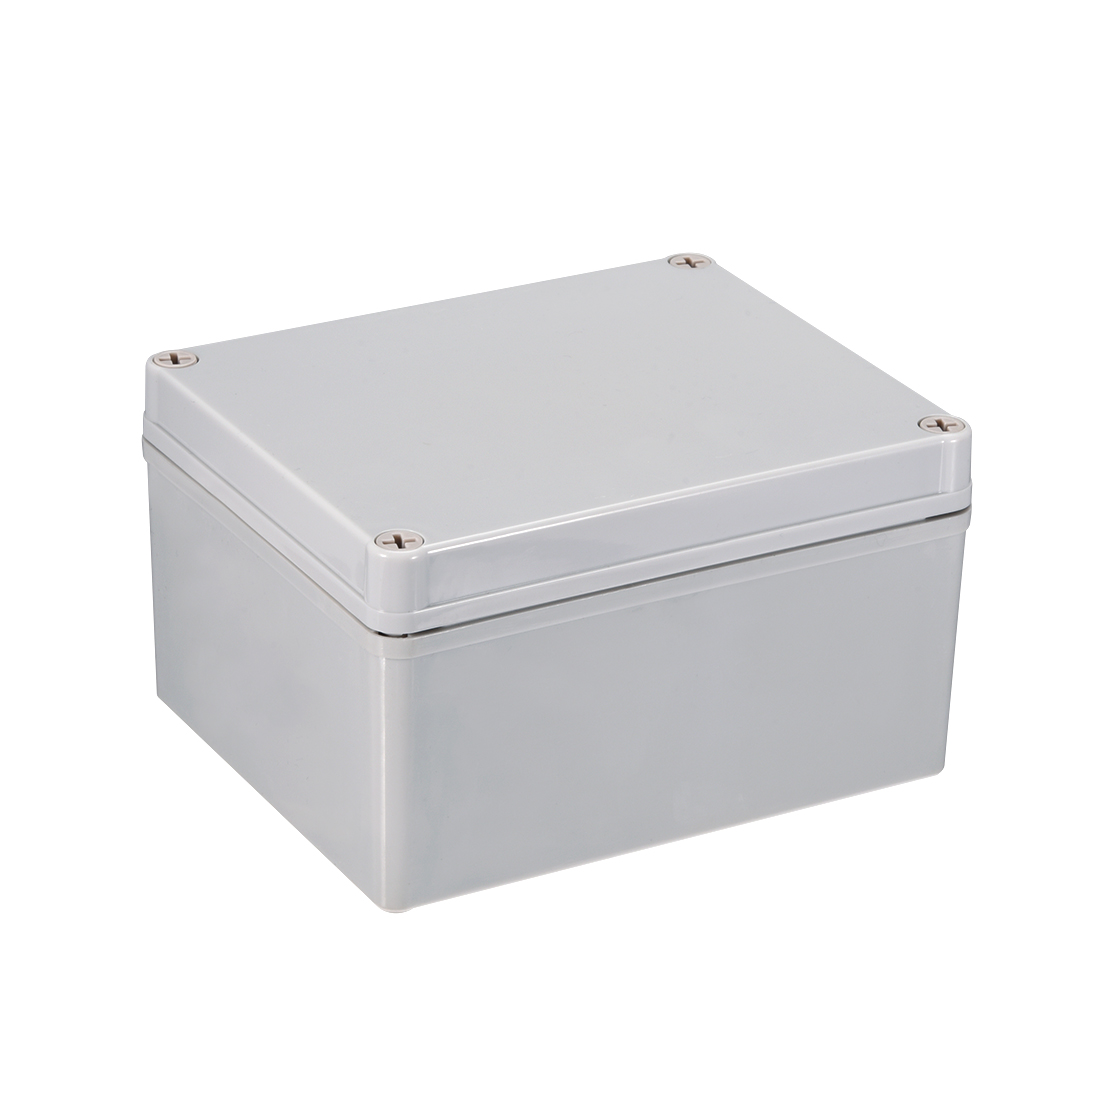 140 x 170 x 95mm Electronic ABS Plastic DIY Junction Box Enclosure Case Gray